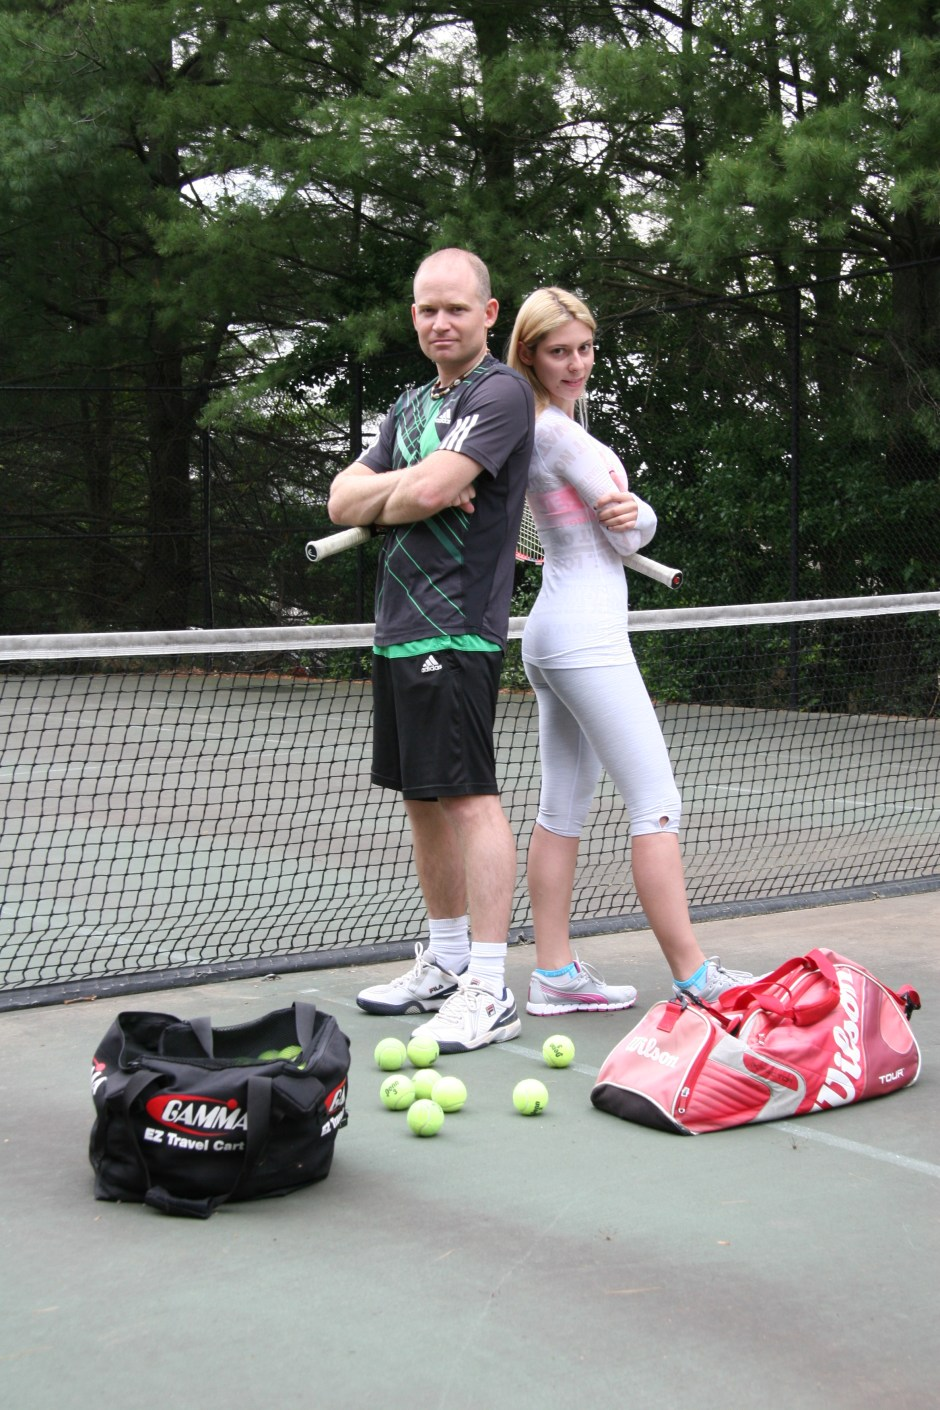 Diana Chalikov and Robert A. Walker, tennis trainers